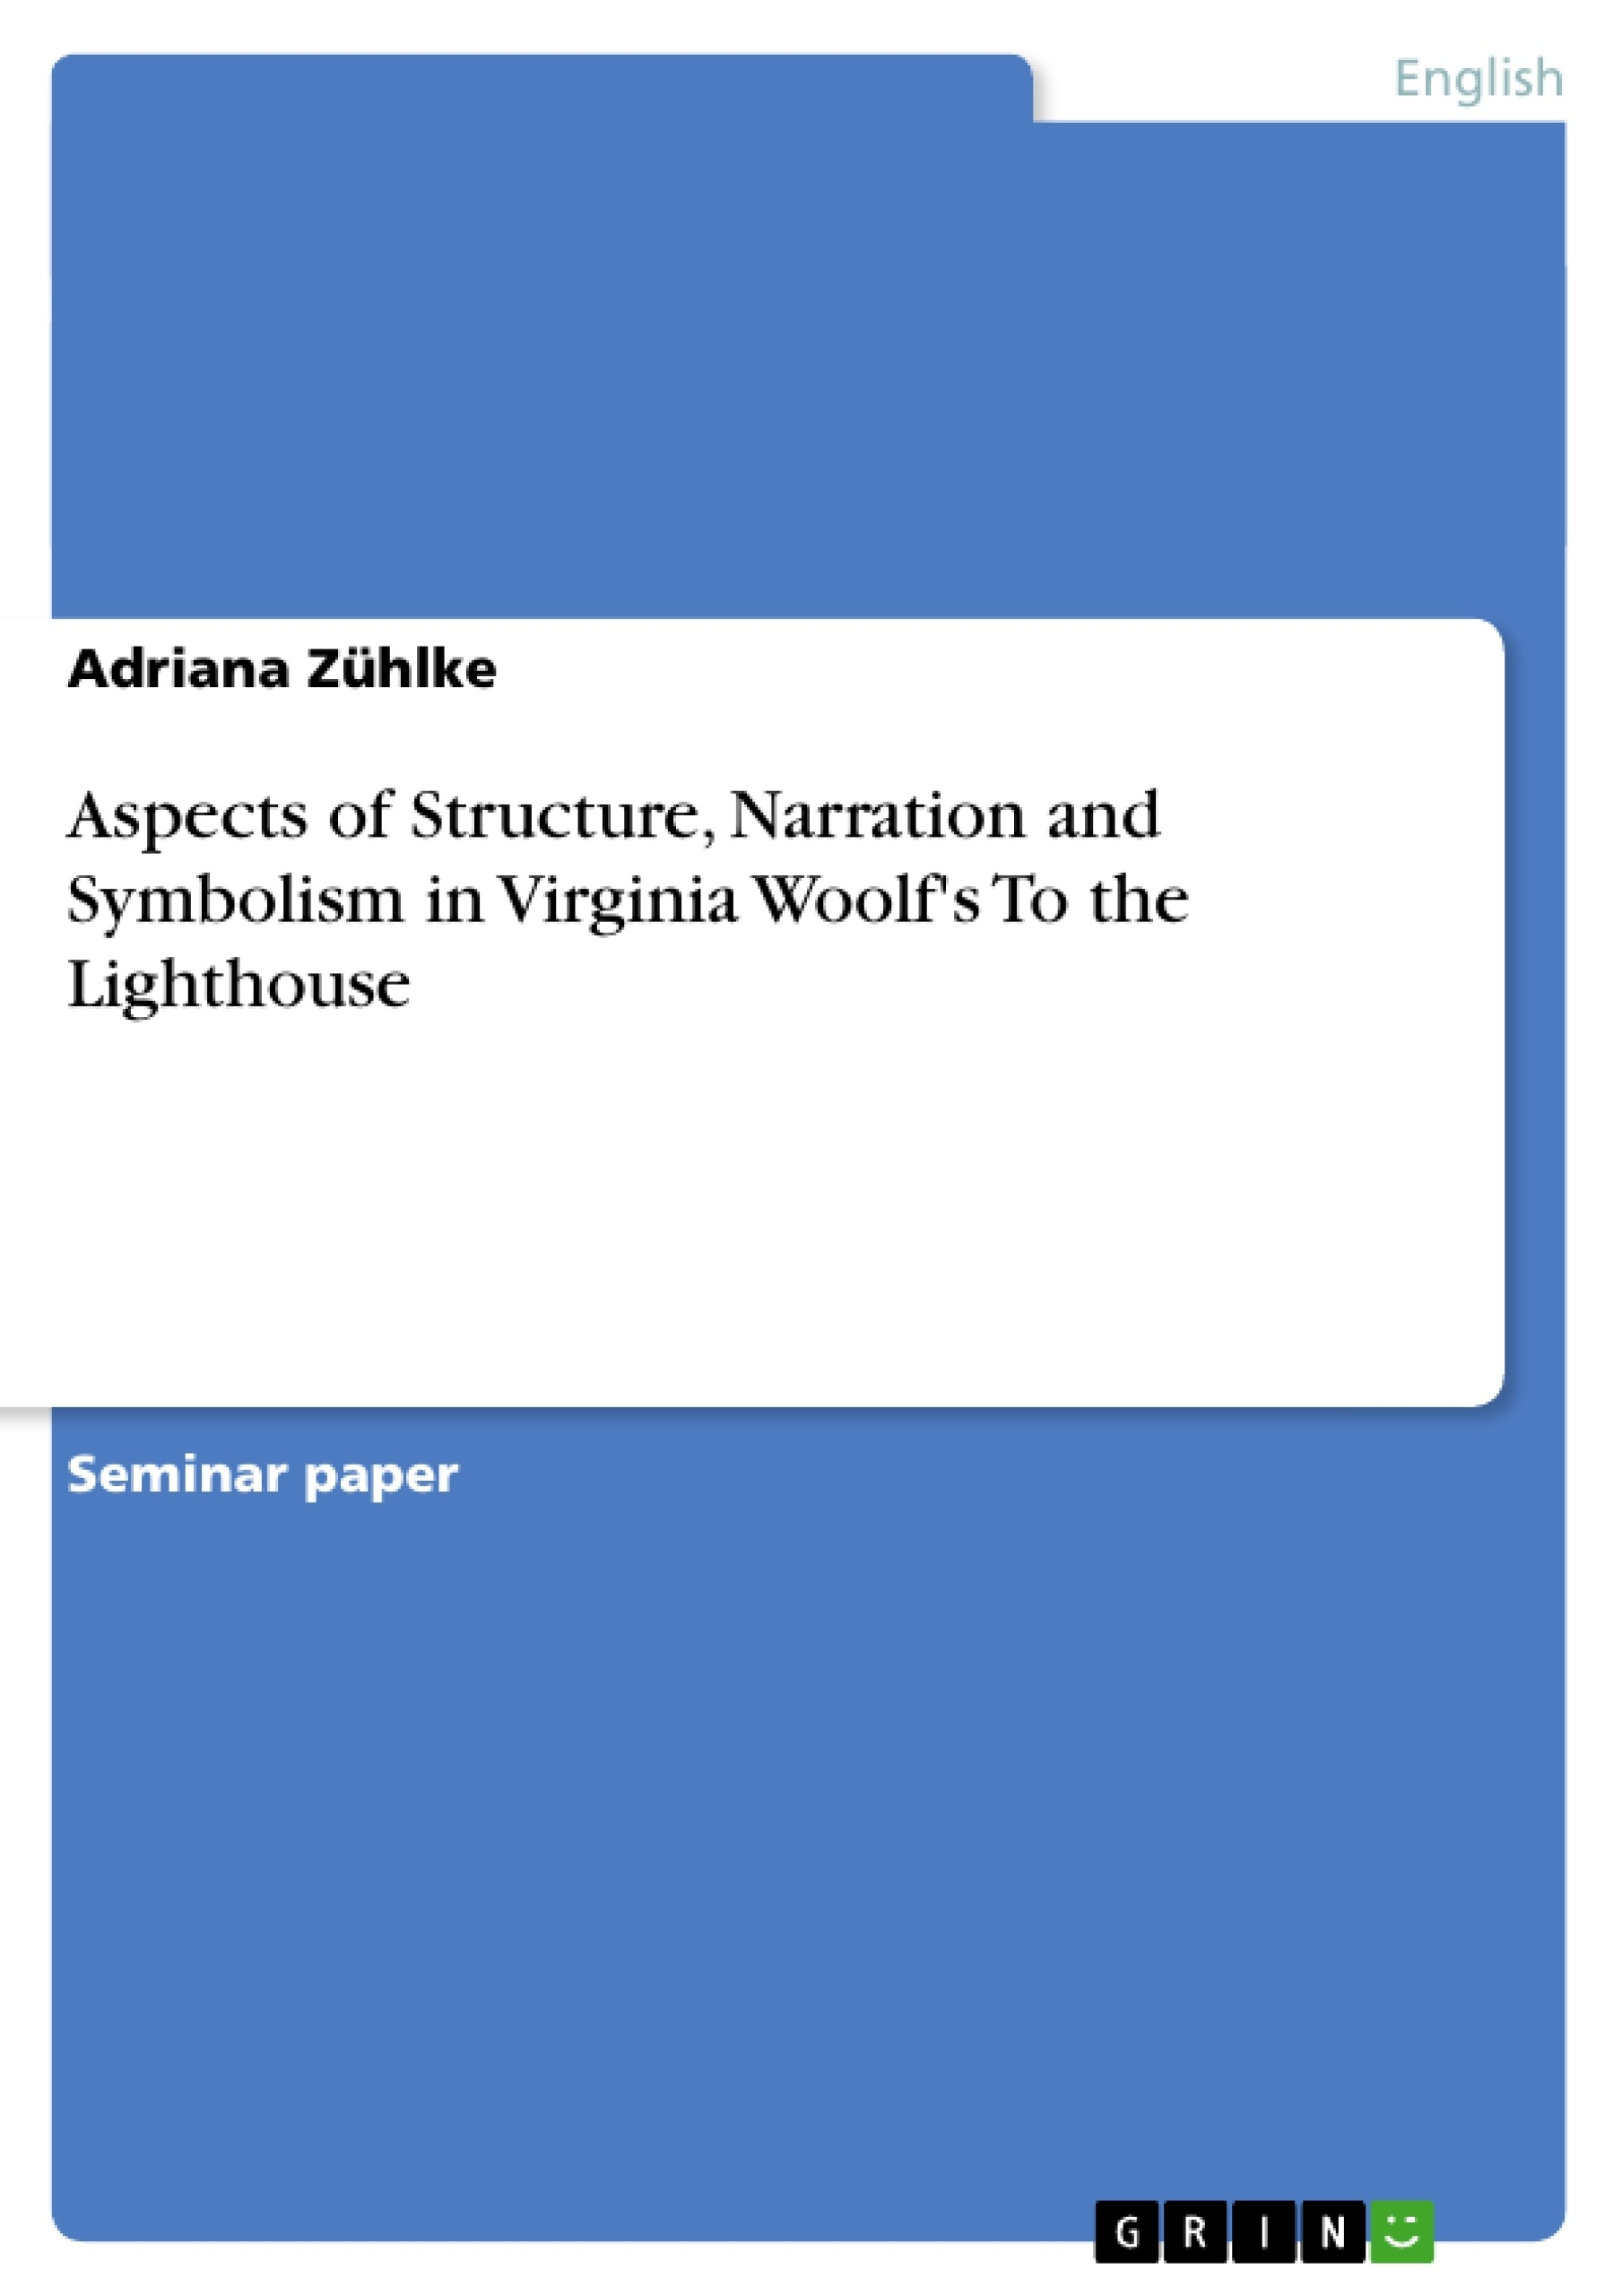 Title: Aspects of Structure, Narration and Symbolism in Virginia Woolf's  To the Lighthouse